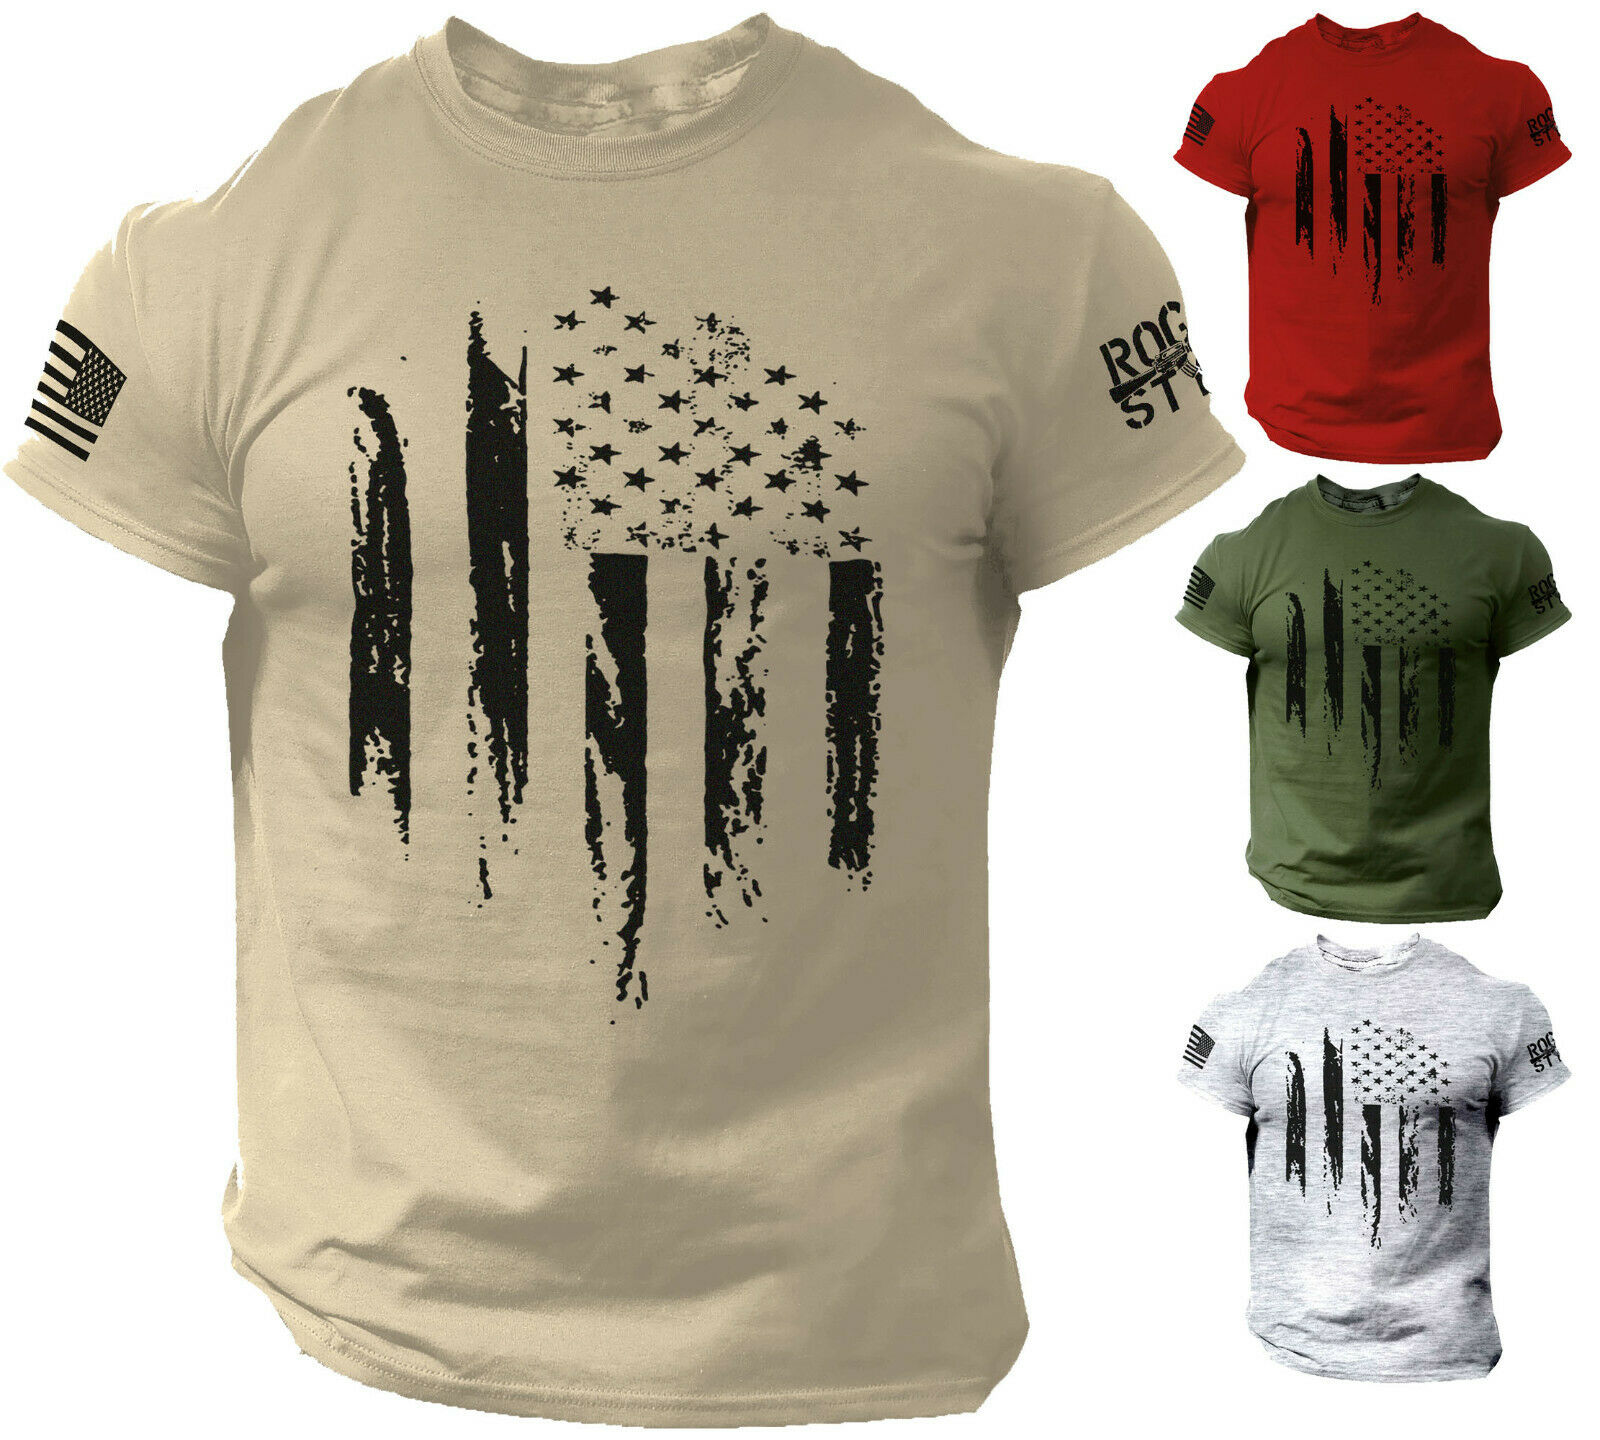 USA Distressed Flag T Shirt American Patriotic Tee Clothing, Shoes & Accessories